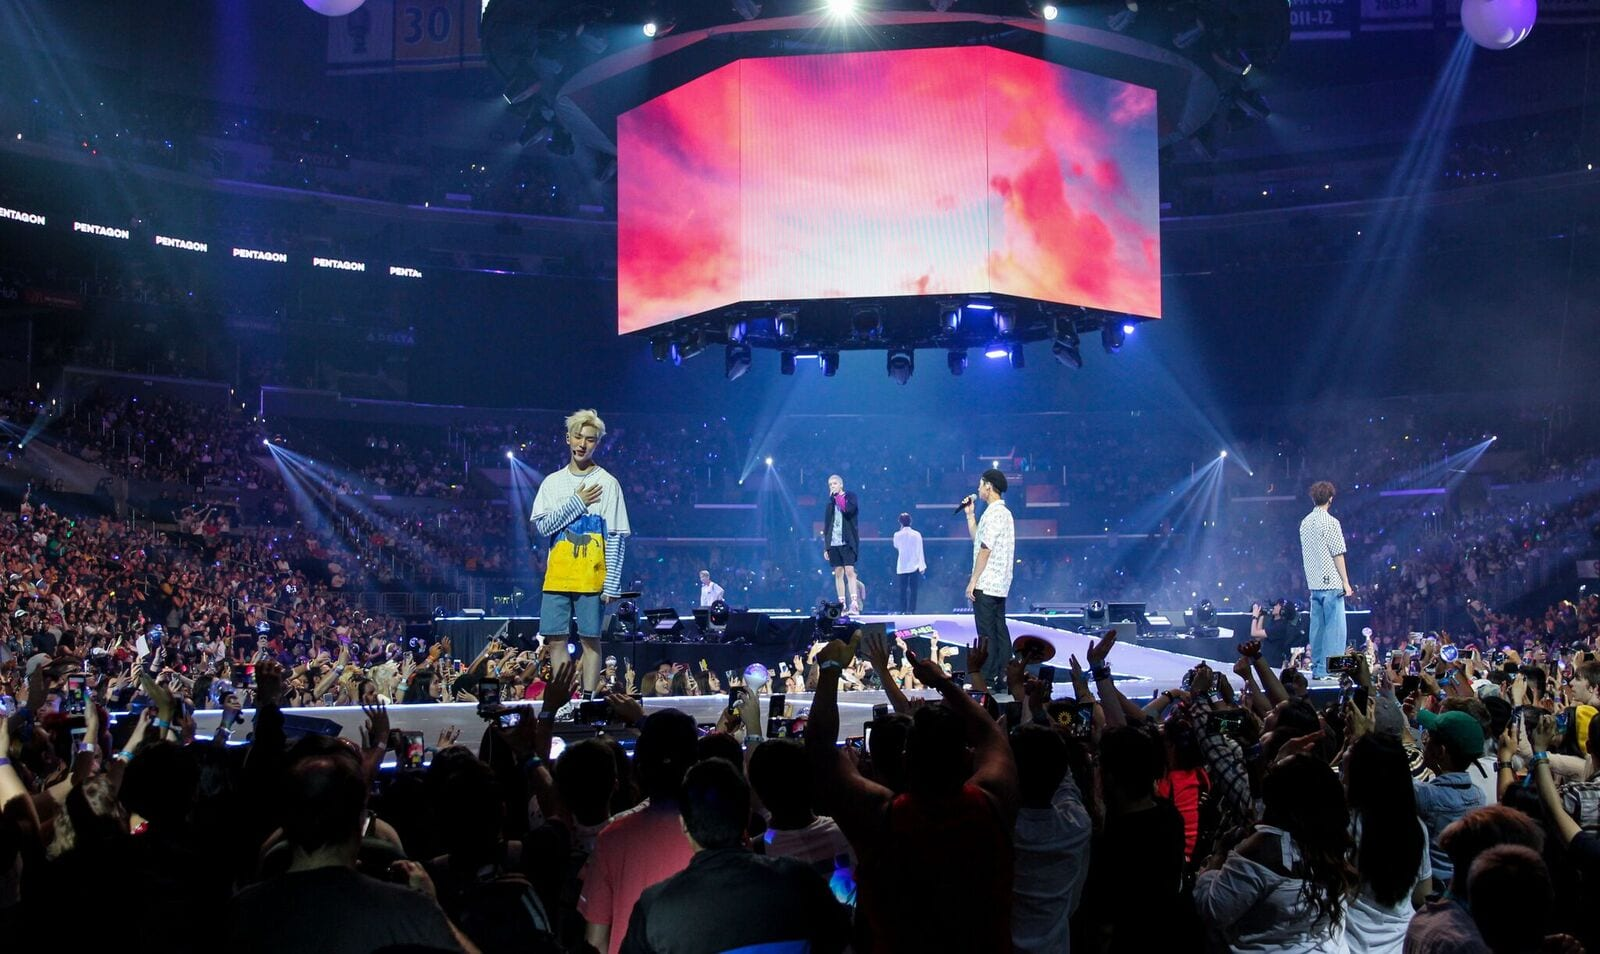 WTK REVIEW: Day Two Of KCON LA 2018 Draws Things To An End With Explosive Performances